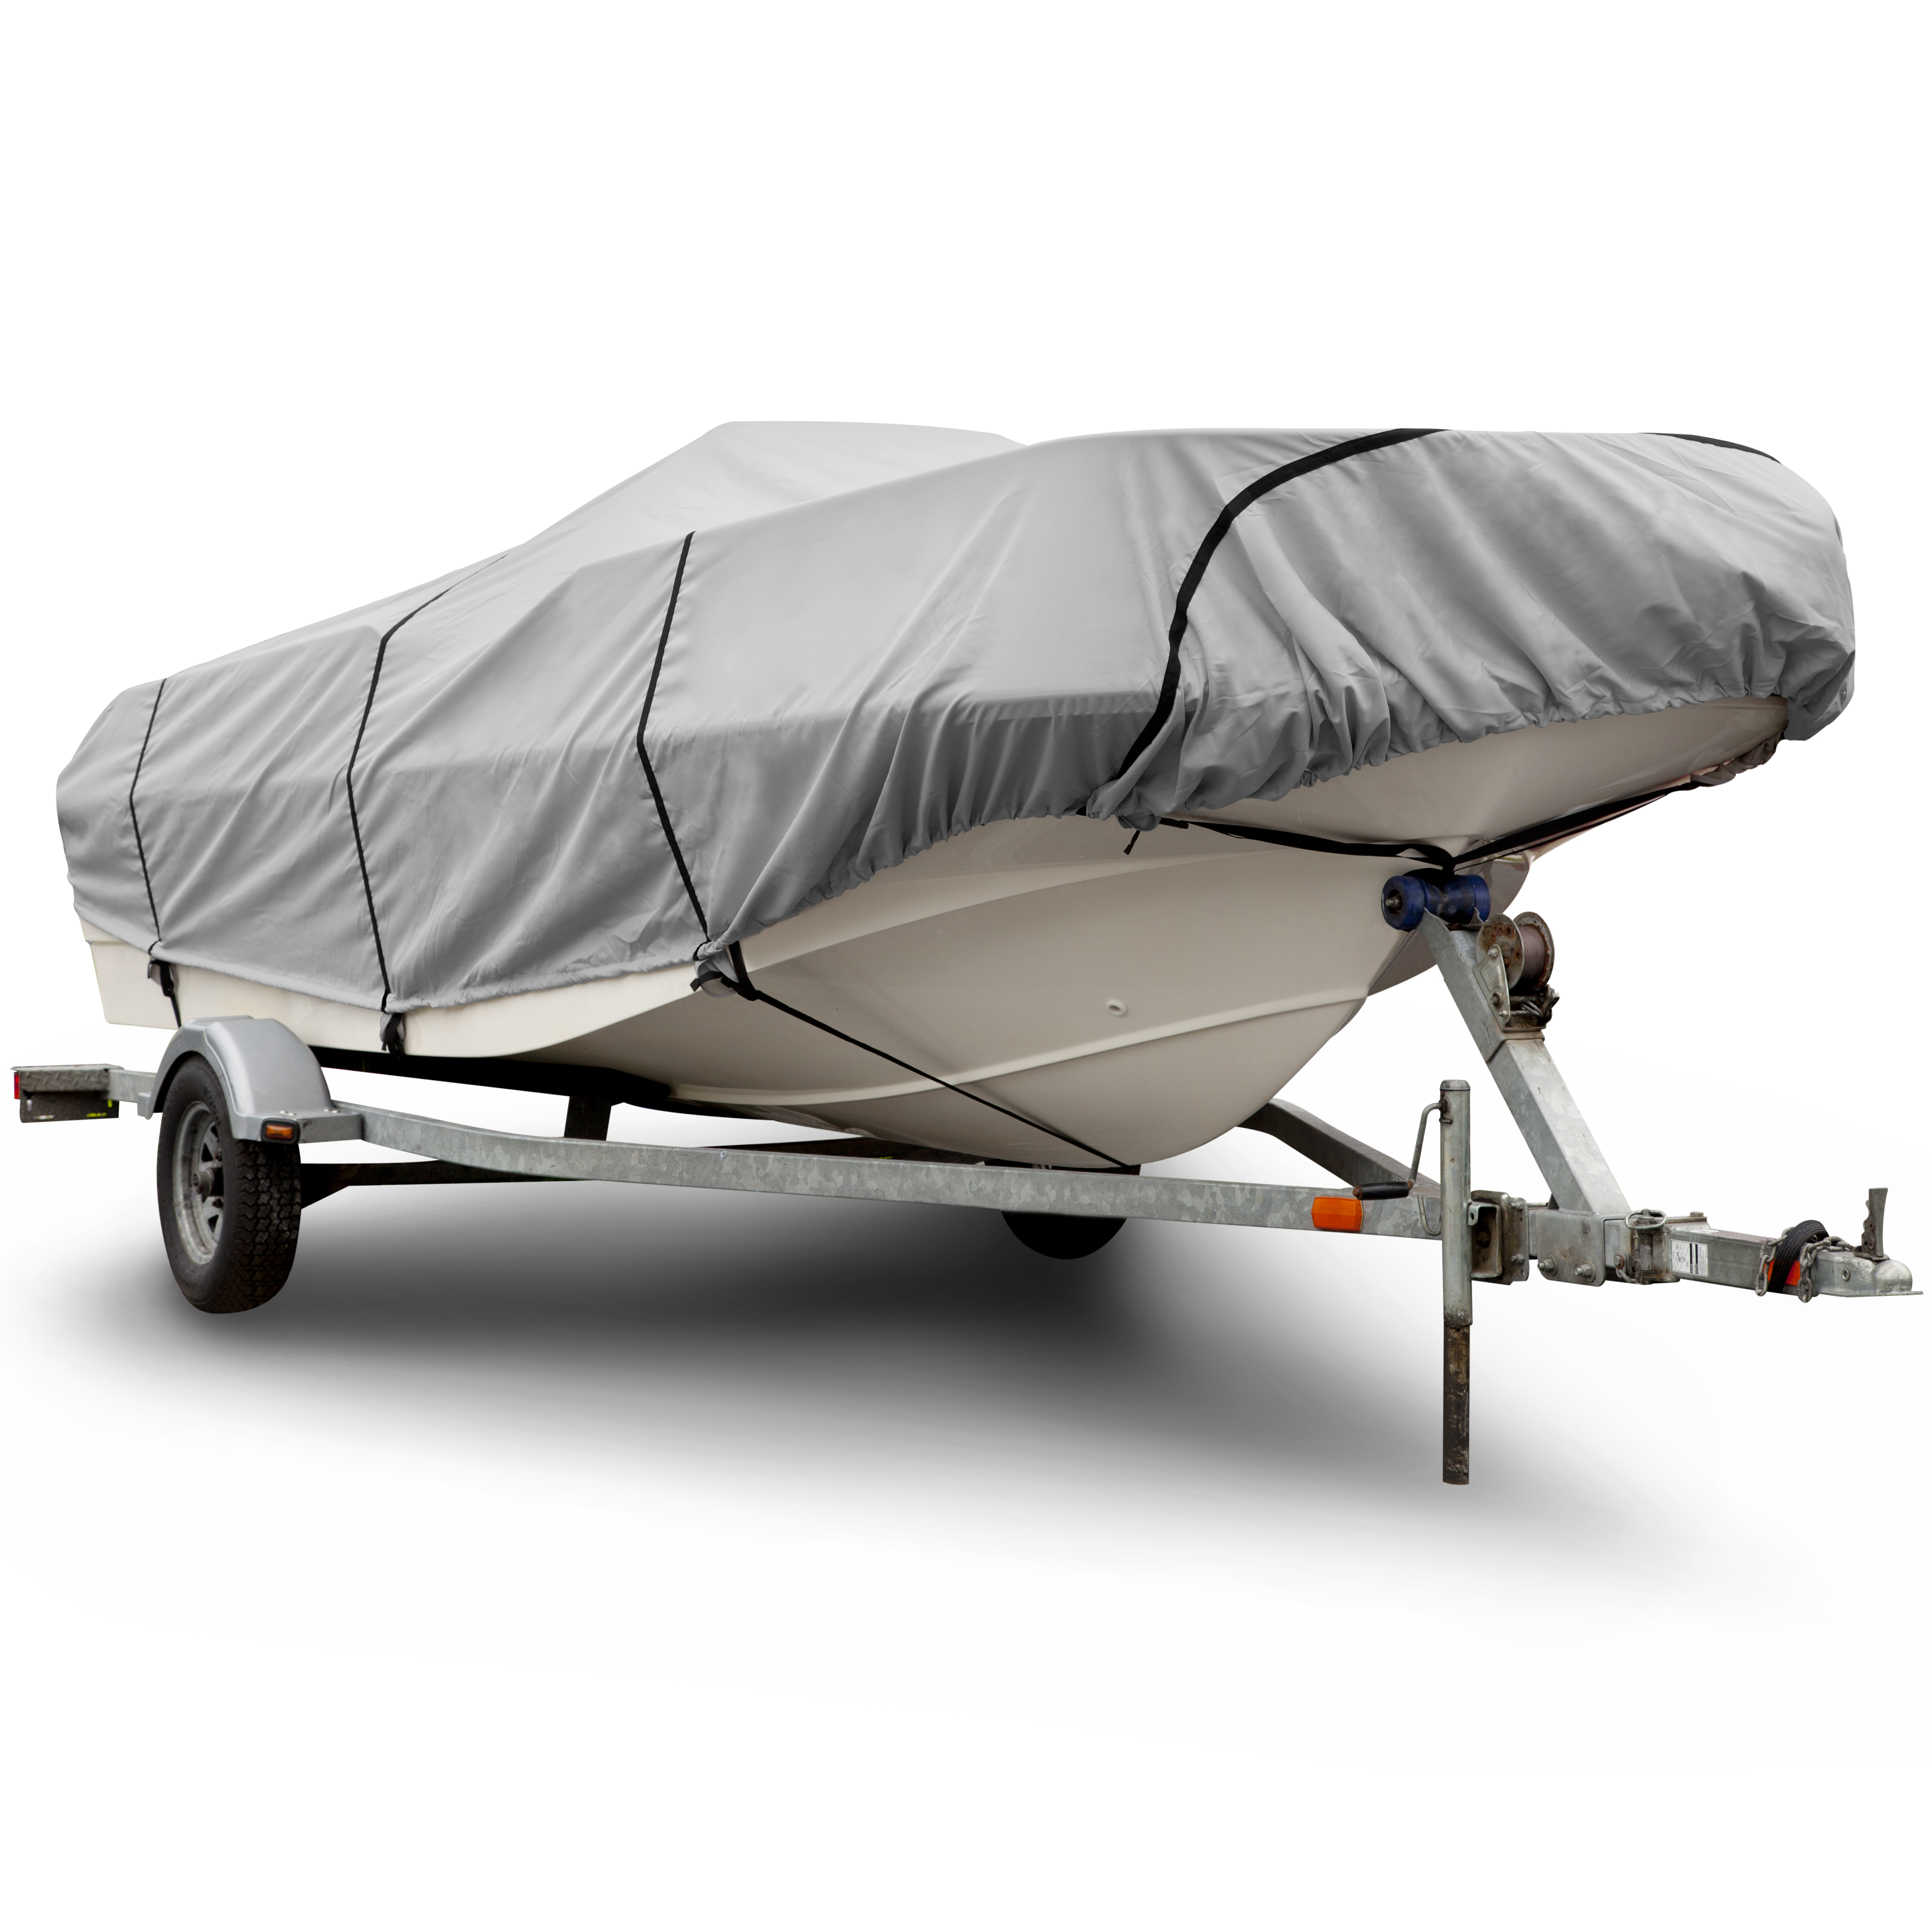 BUDGE 600 Denier Center Console V-Hull Boat Cover, Waterp...